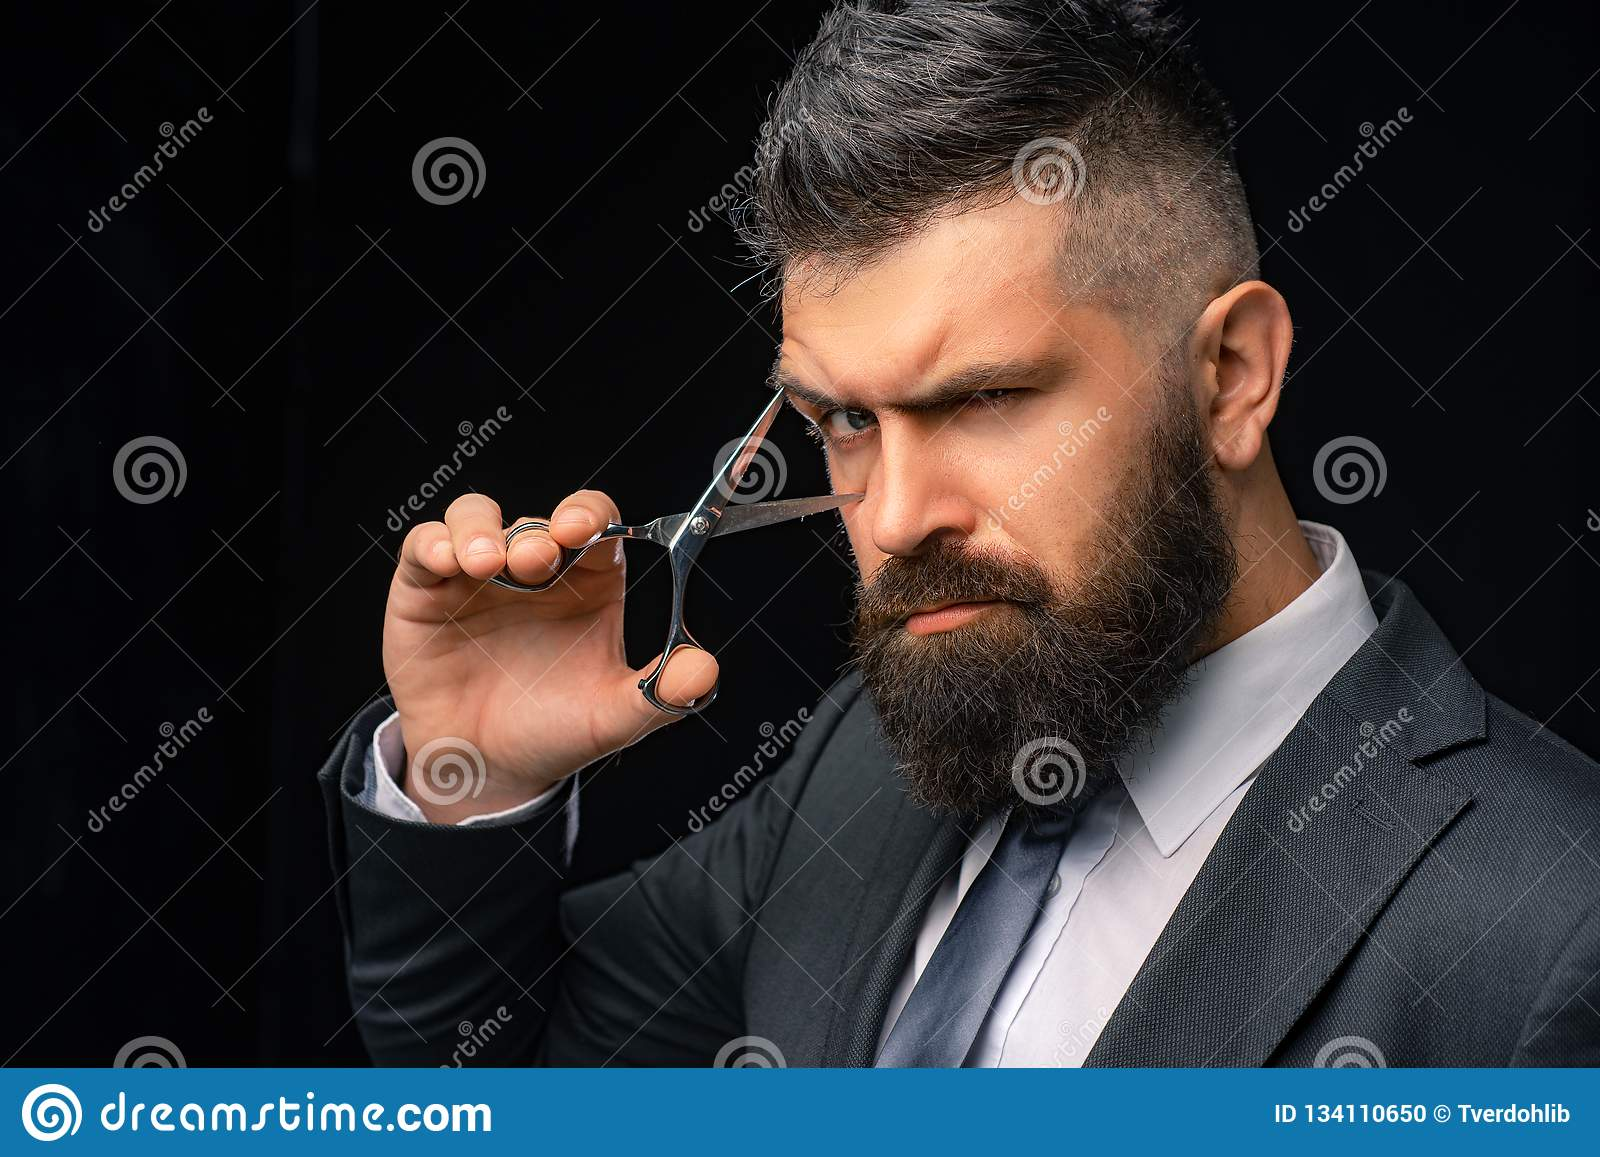 Perfect beard. Haircuts for men. Stylish and hairstyle. Hair salon and barber vintage. Barber shop. Barber on black